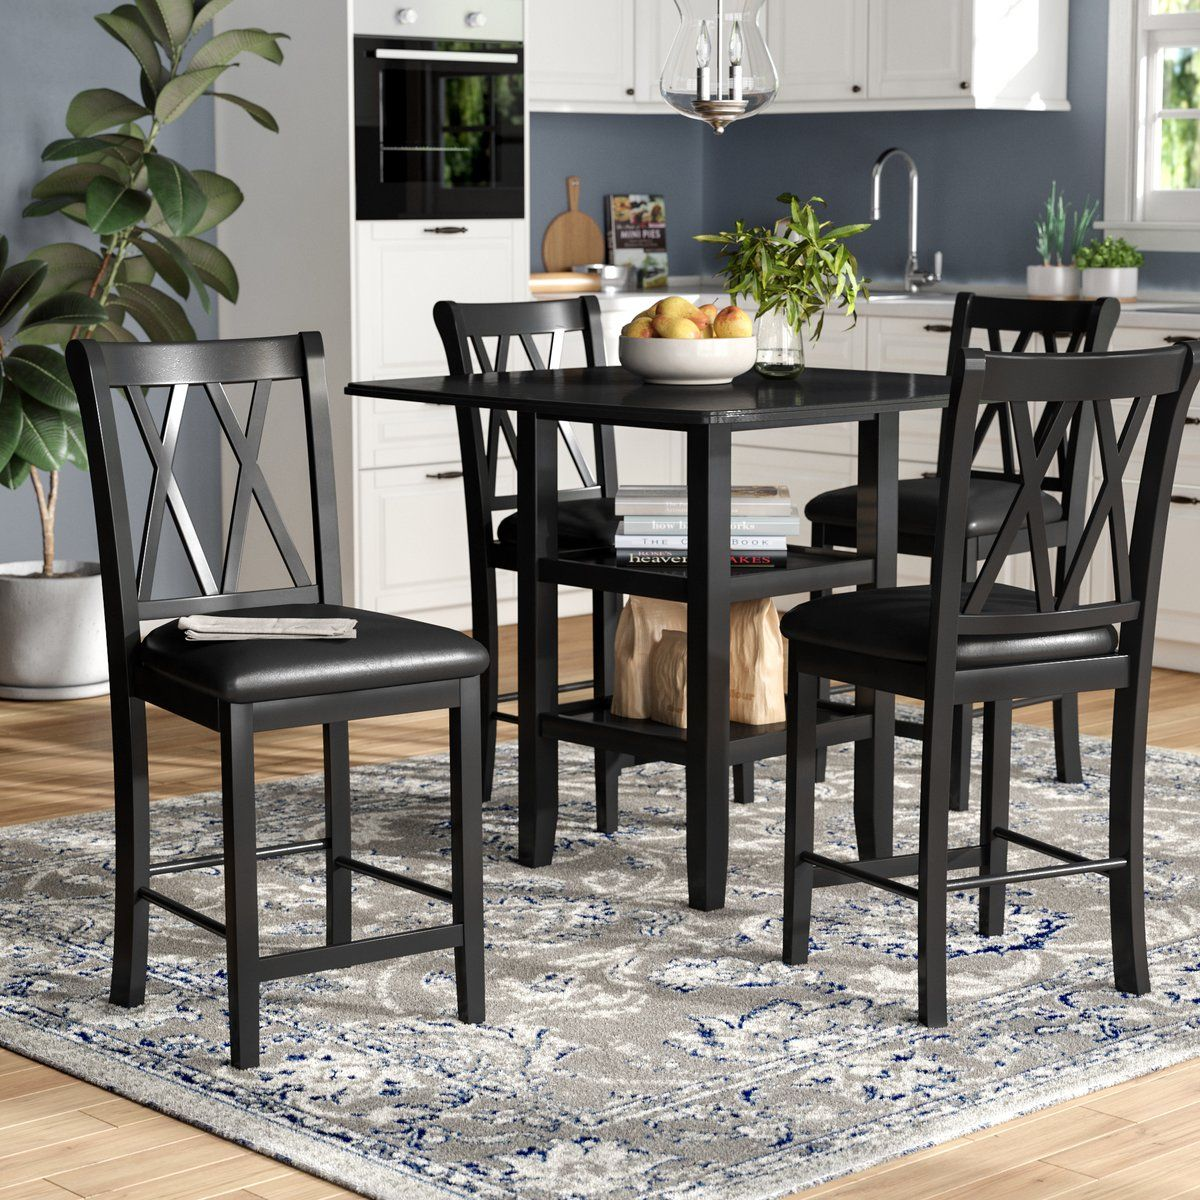 Darby Home Co Kathie 5 Piece Counter Height Dining Set Reviews Wayfair Dining Room Sets Solid Wood Table Tops Counter Height Dining Sets